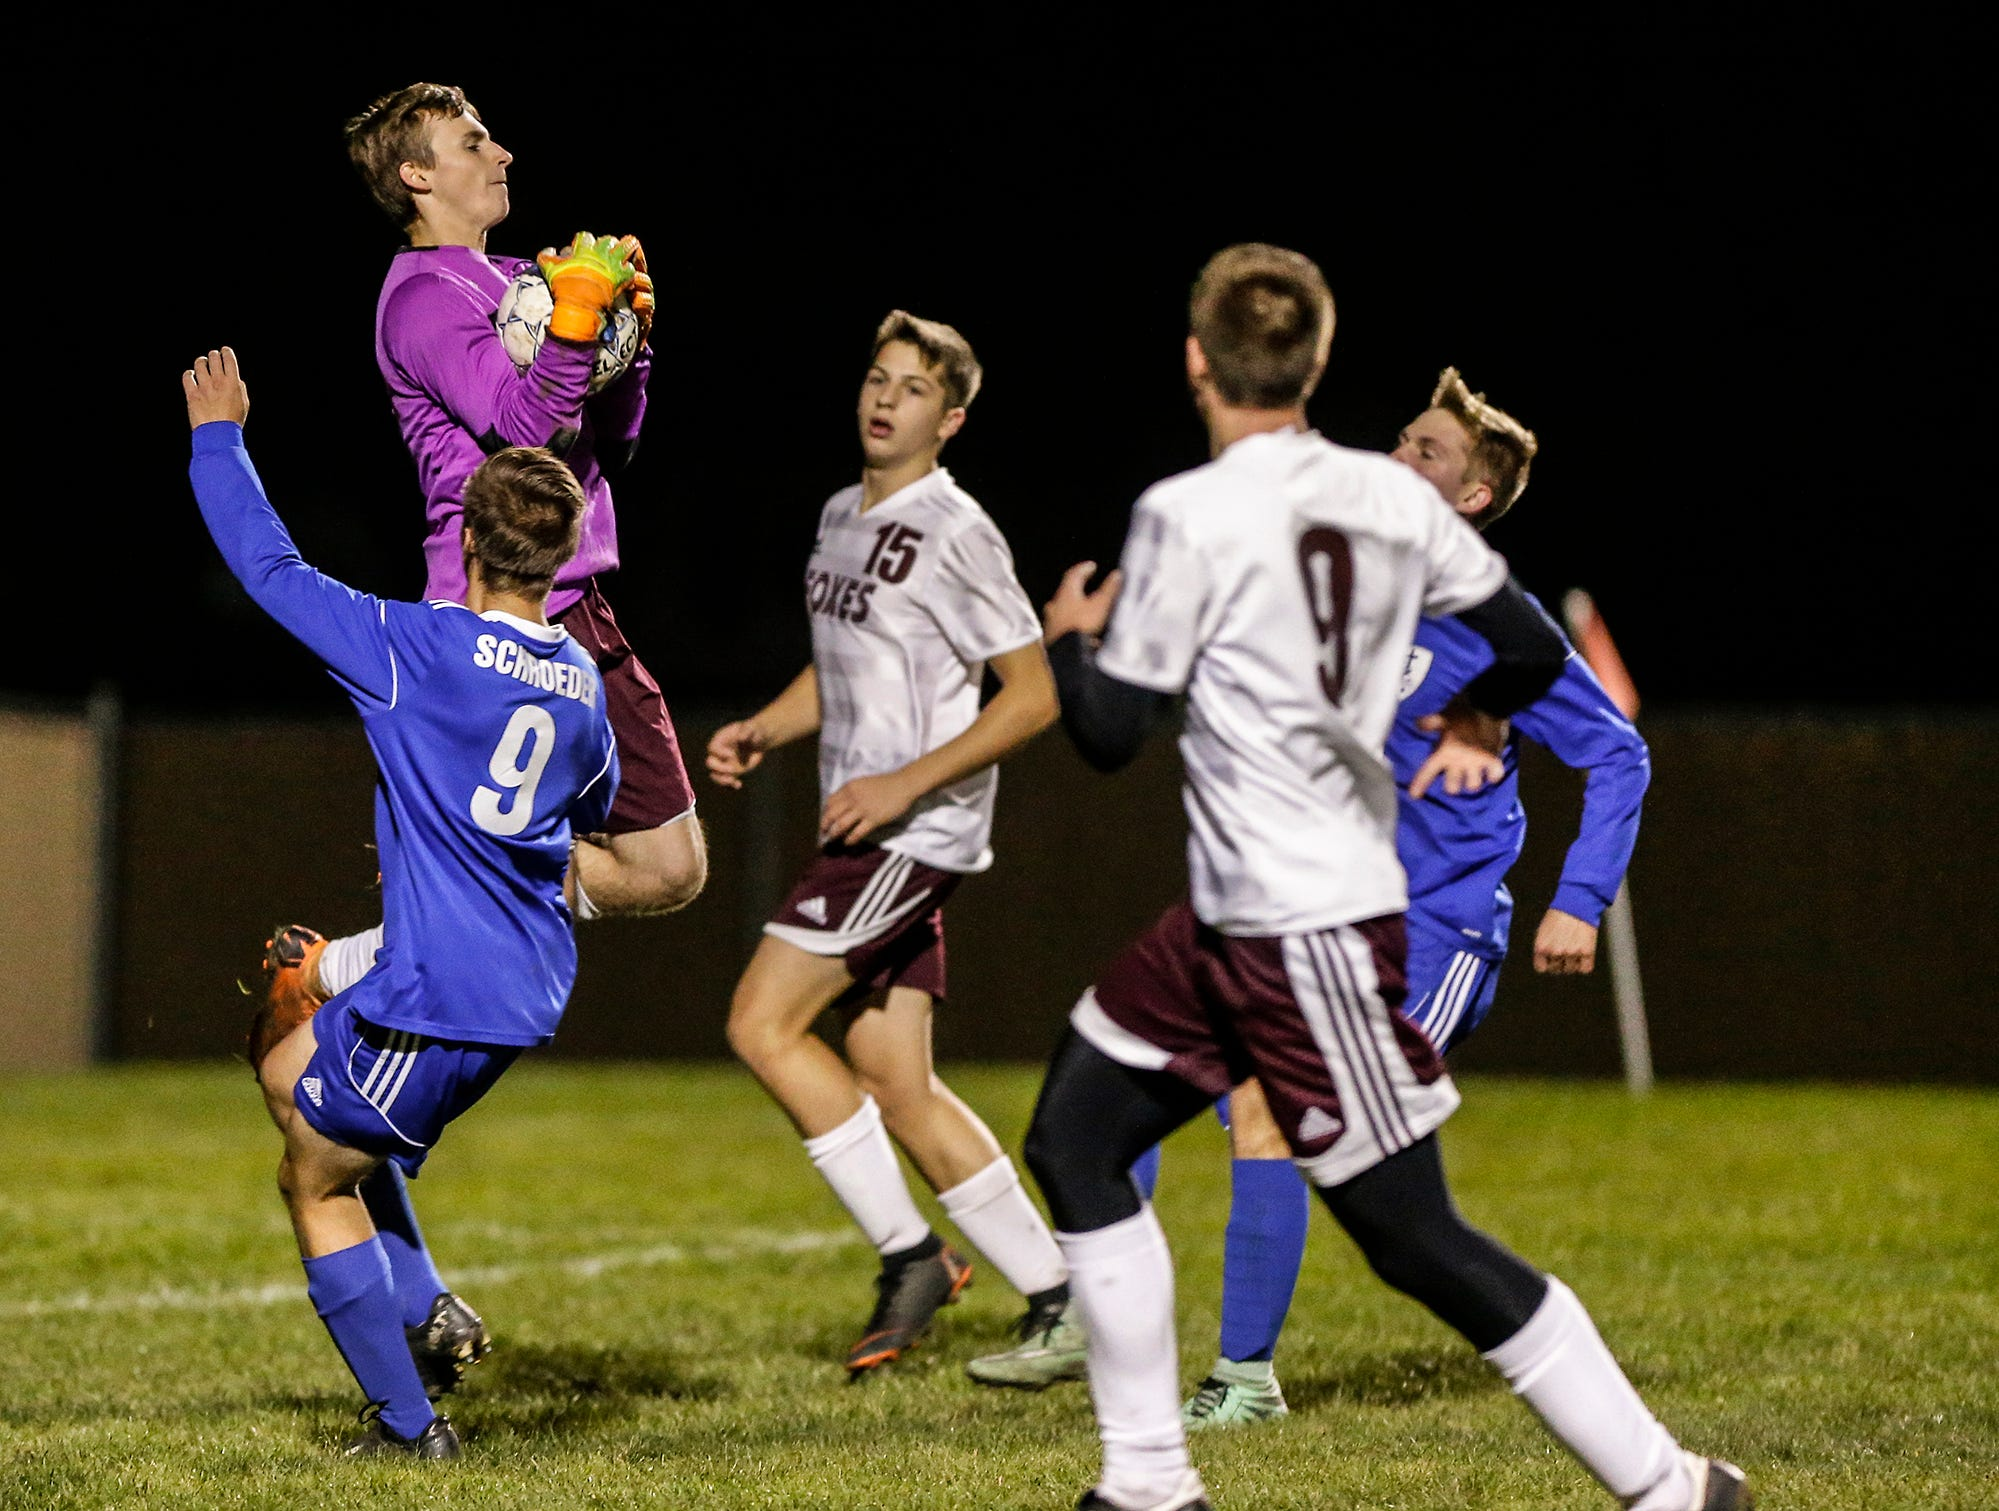 Omro High School soccer's Zachary Milner goes up to block a ball kicked by a Winnebago Lutheran Academy player during their WIAA regional playoff game Thursday, October 18, 2018 in Fond du Lac, Wisconsin. Doug Raflik/USA TODAY NETWORK-Wisconsin